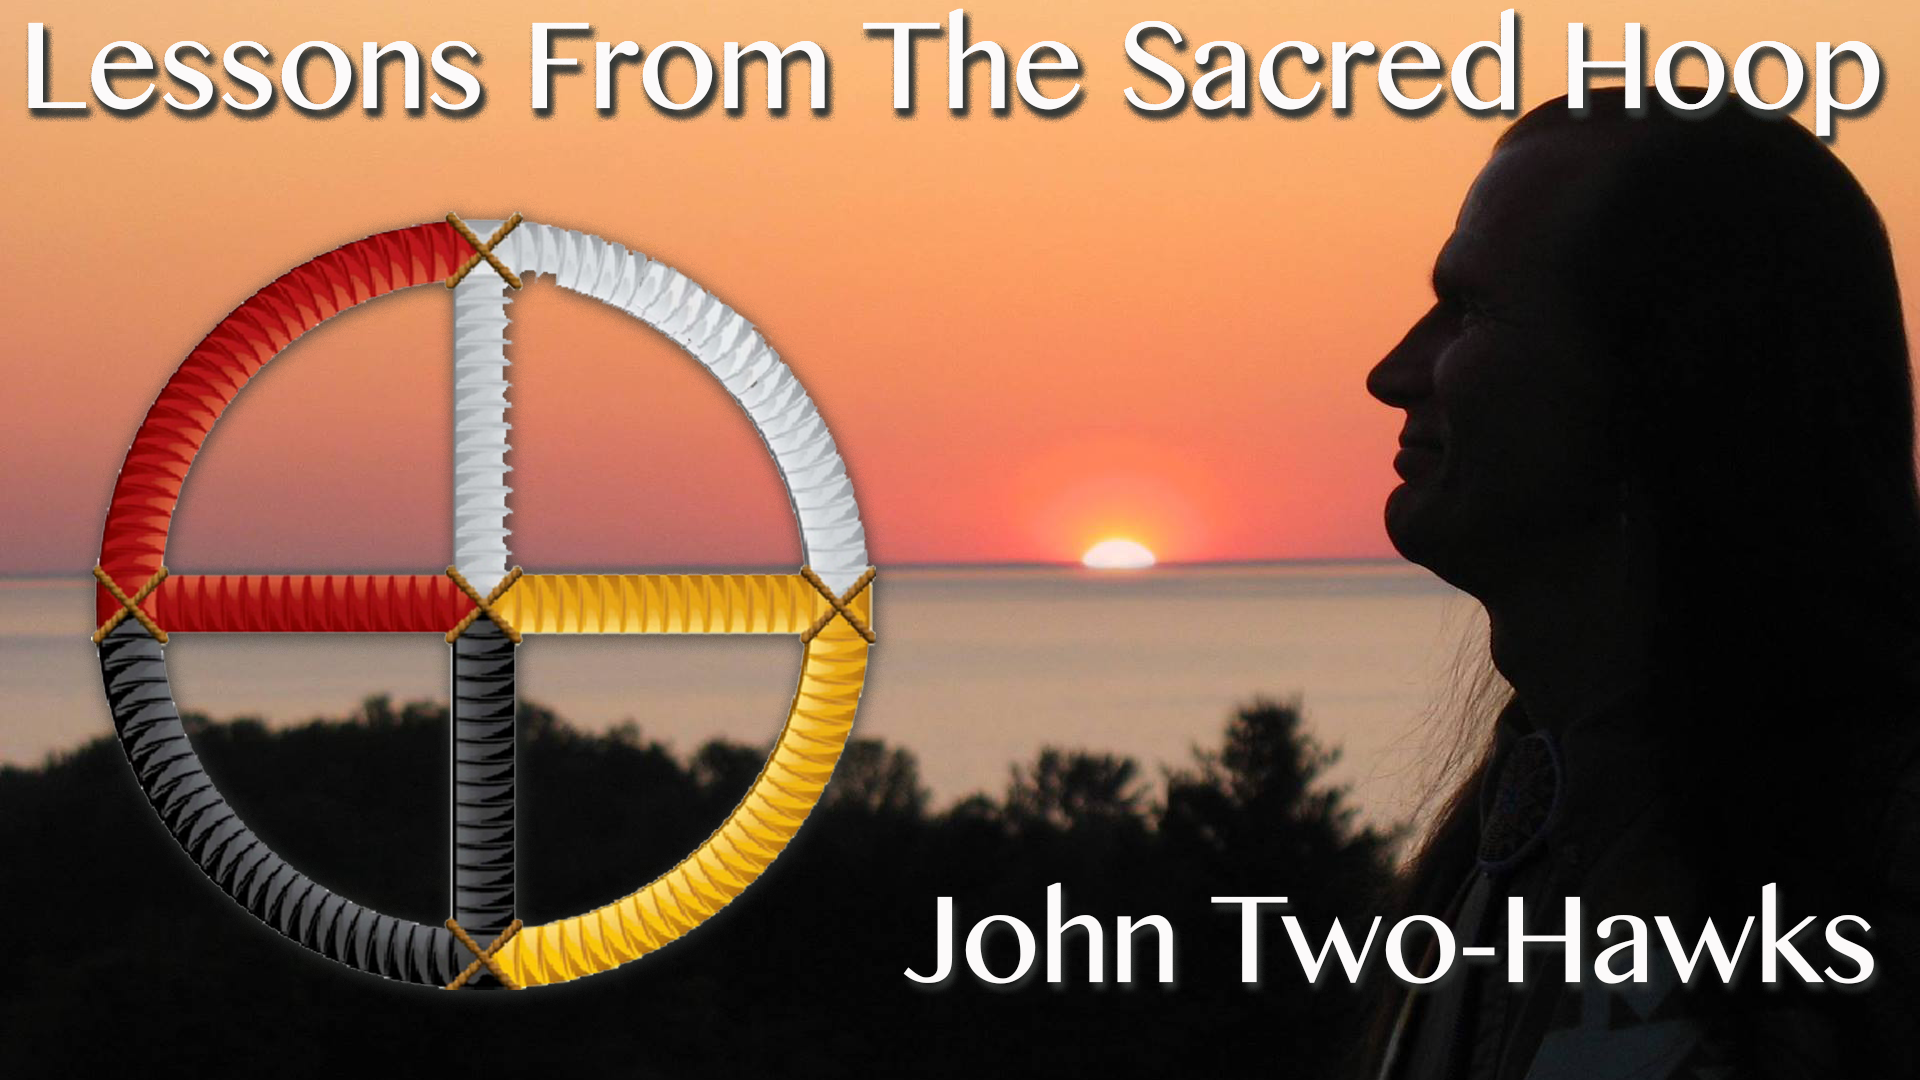 John Two Hawks at Unity of Buffalo - Lessons from the Sacred Hoop